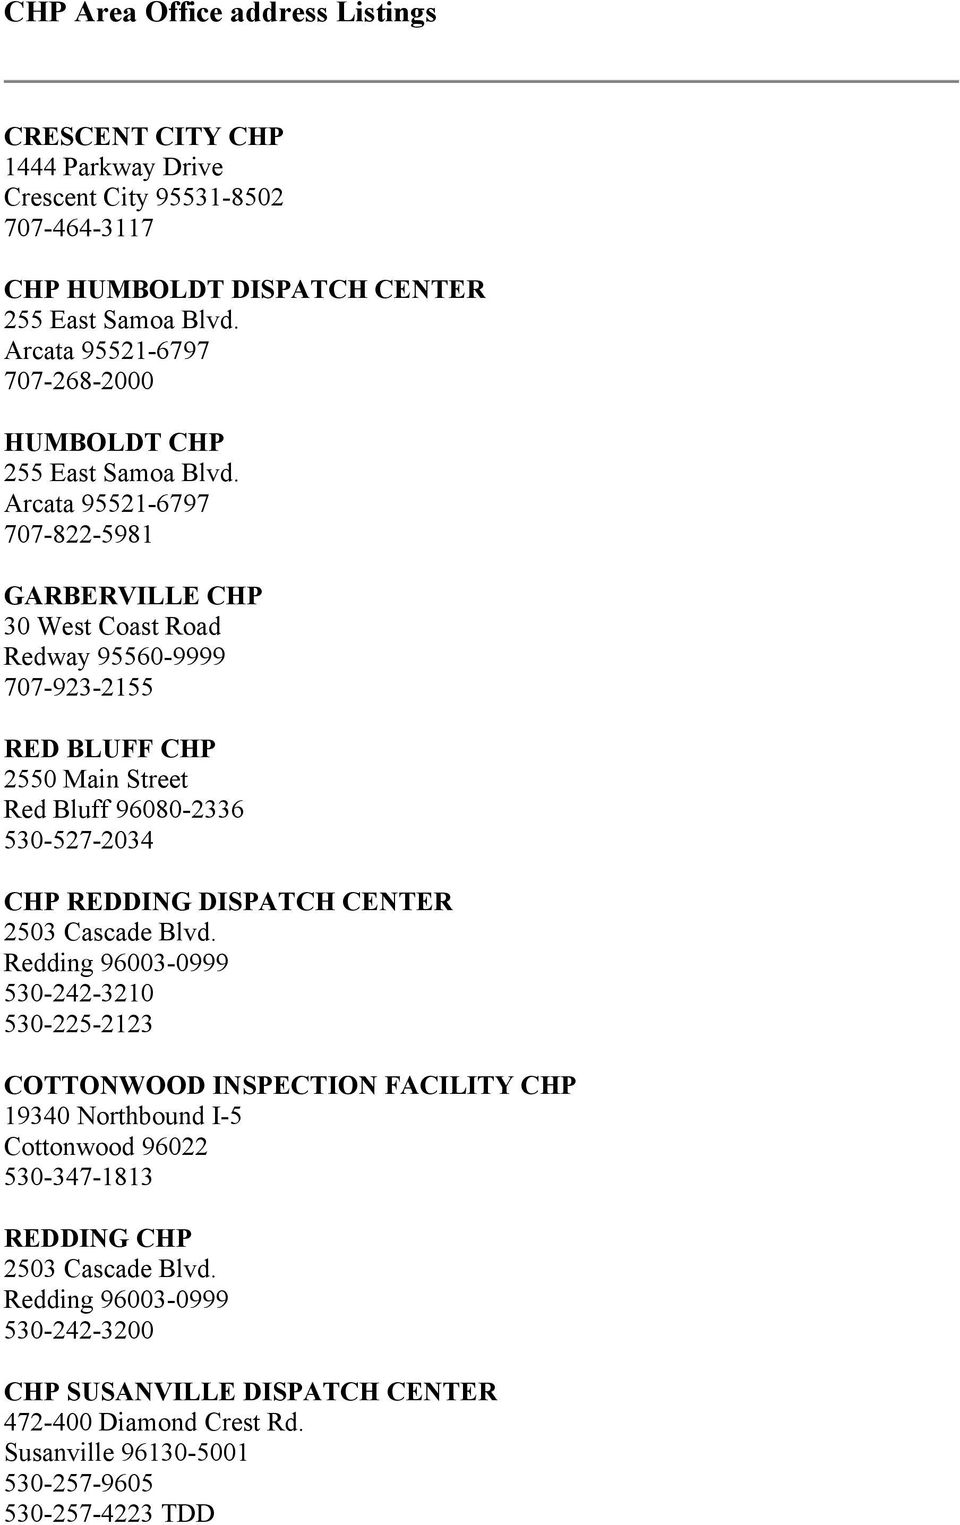 CHP Area Office address Listings - PDF